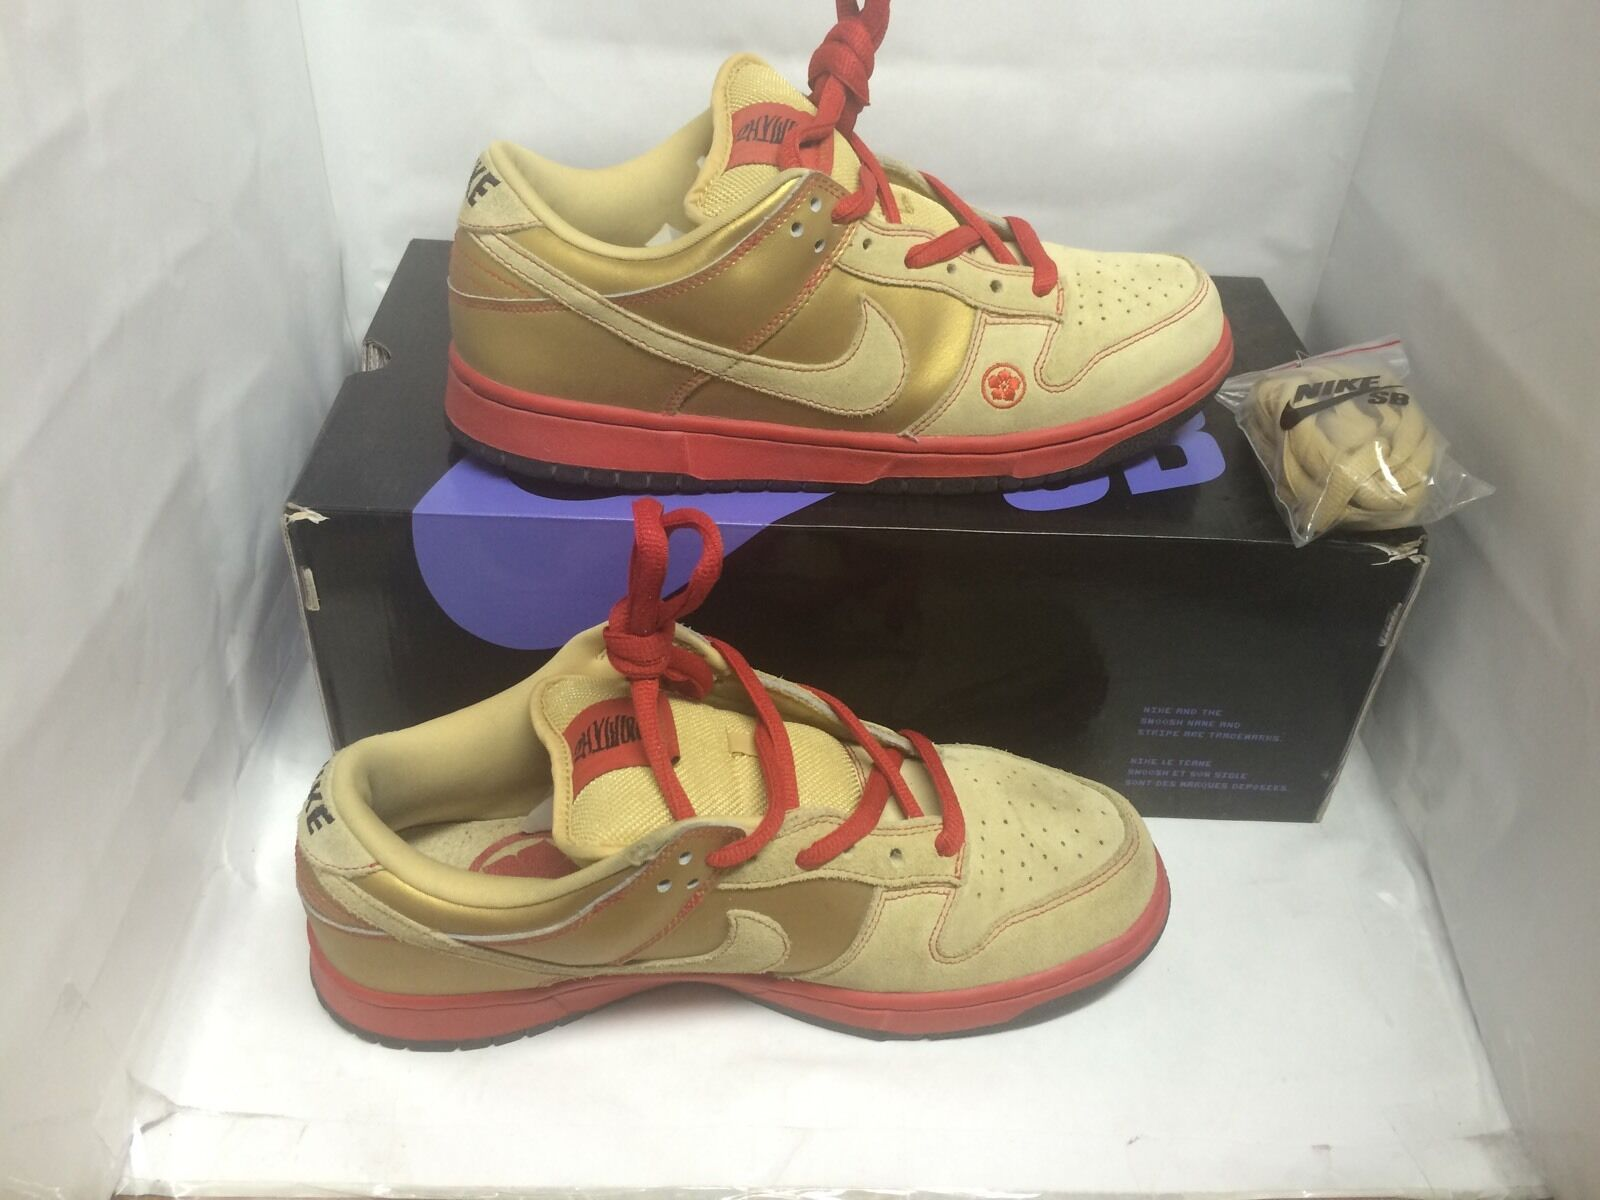 nike dunk dunk nike bas sb lucky cat / argent chat taille 9,5 supreme 72c0f3